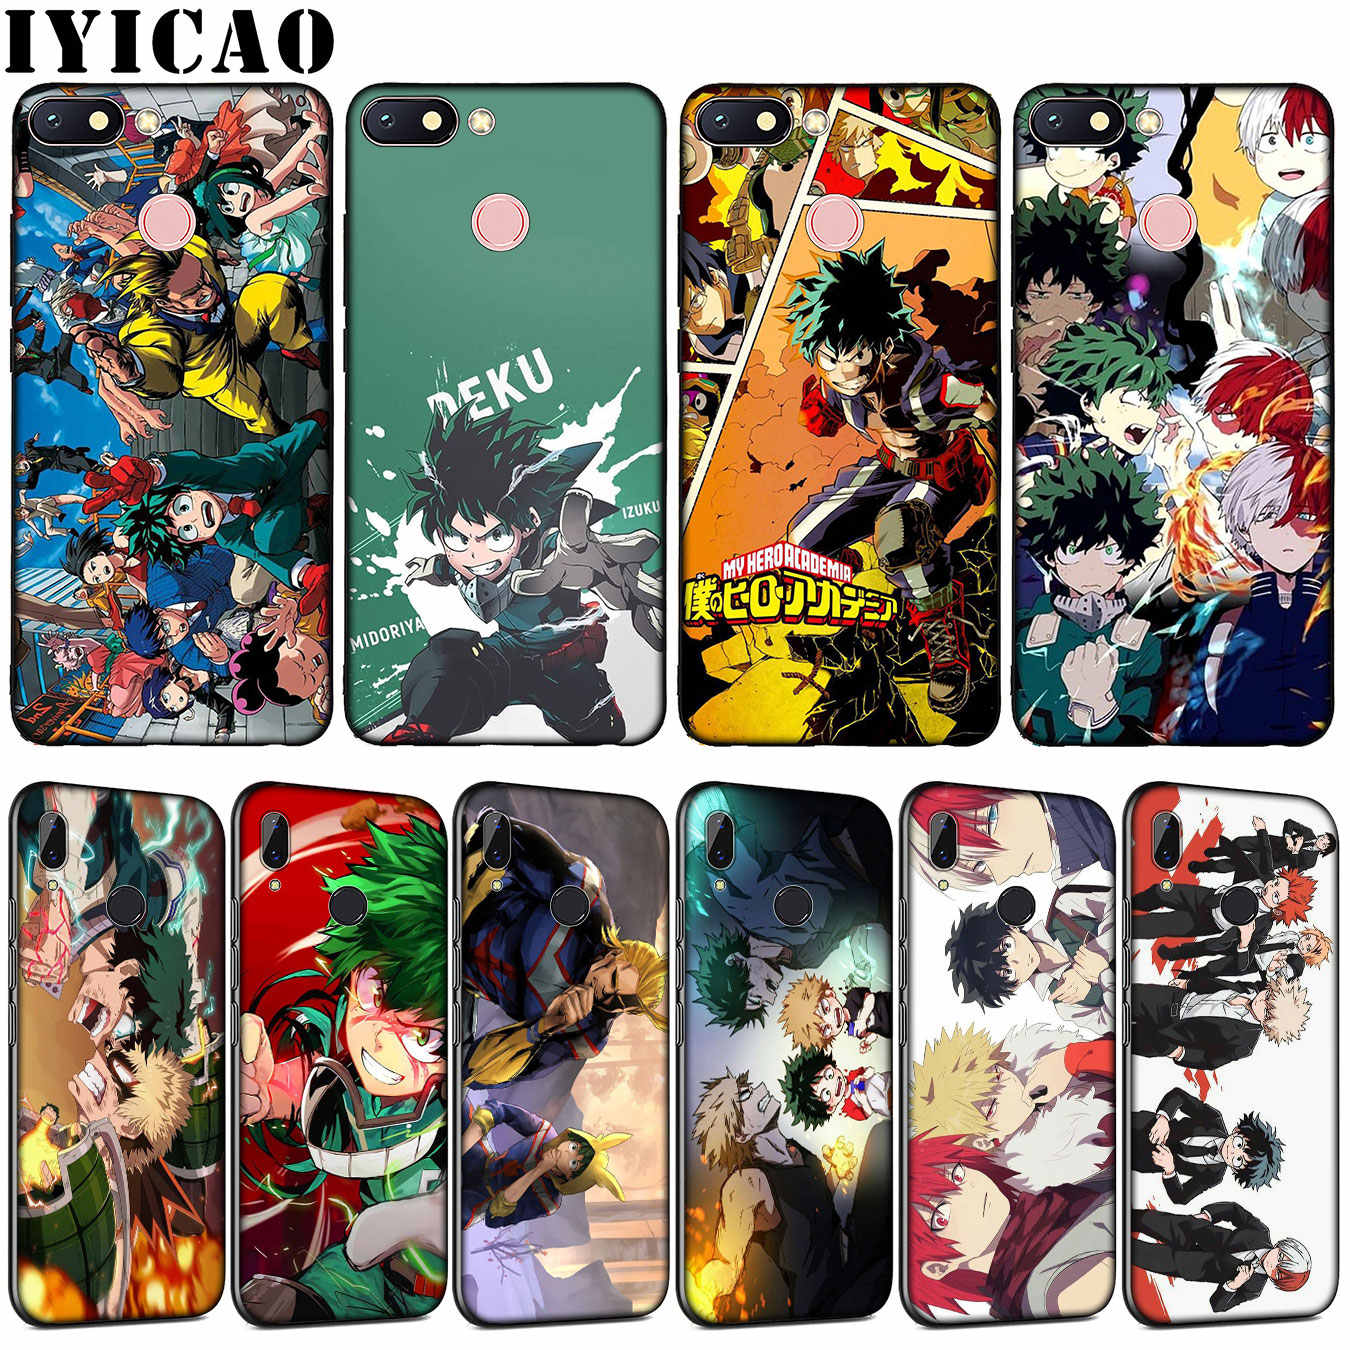 Iyicao Mijn Hero Academia Soft Tpu Siliconen Telefoon Case Voor Xiaomi Redmi Note 8 8A 8T 7 7A 6 6A 5 5A Gaan S2 K30 K20 Pro Cover